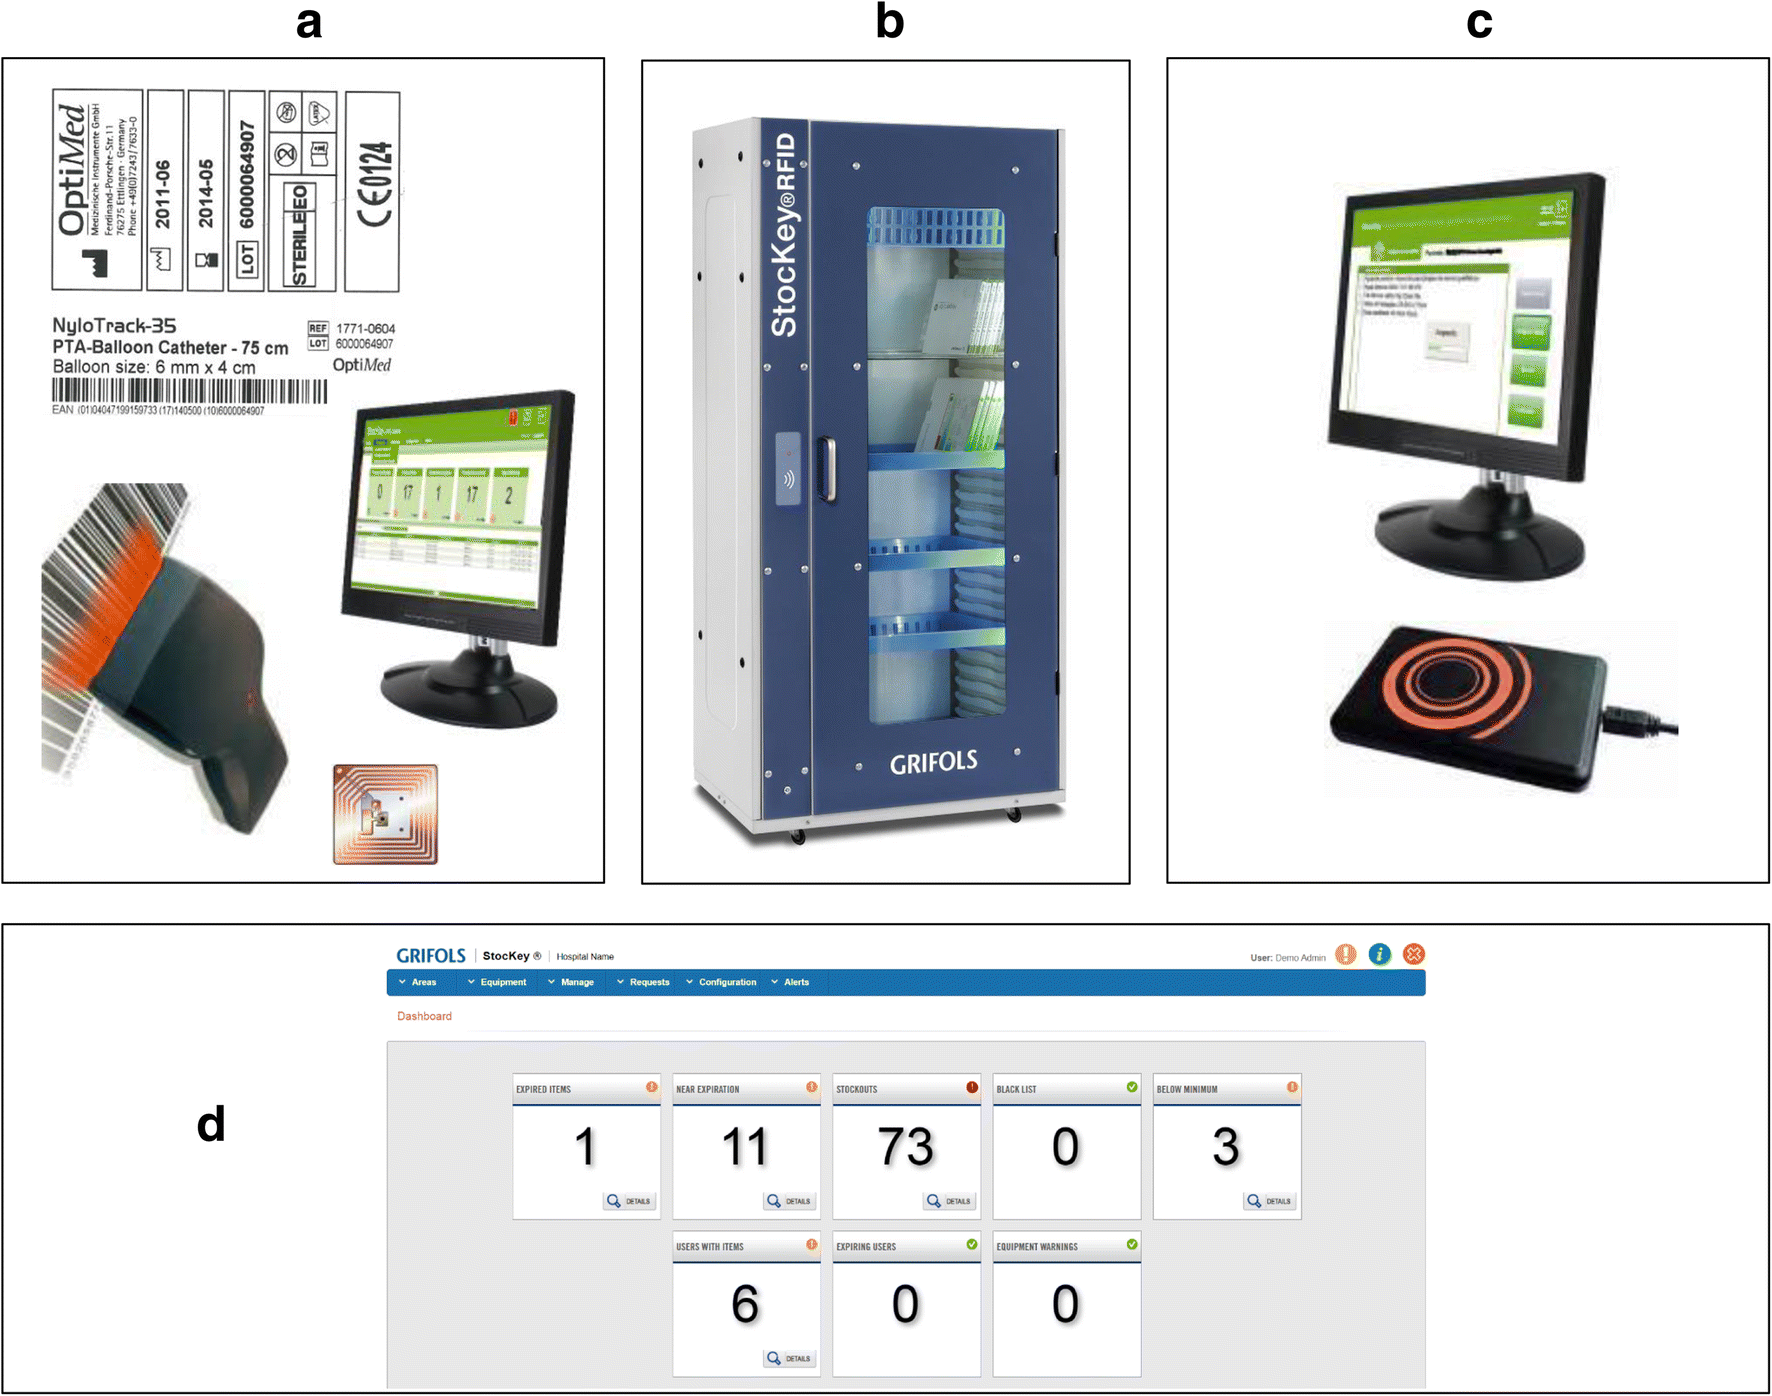 Implementation and Evaluation of a RFID Smart Cabinet to Improve